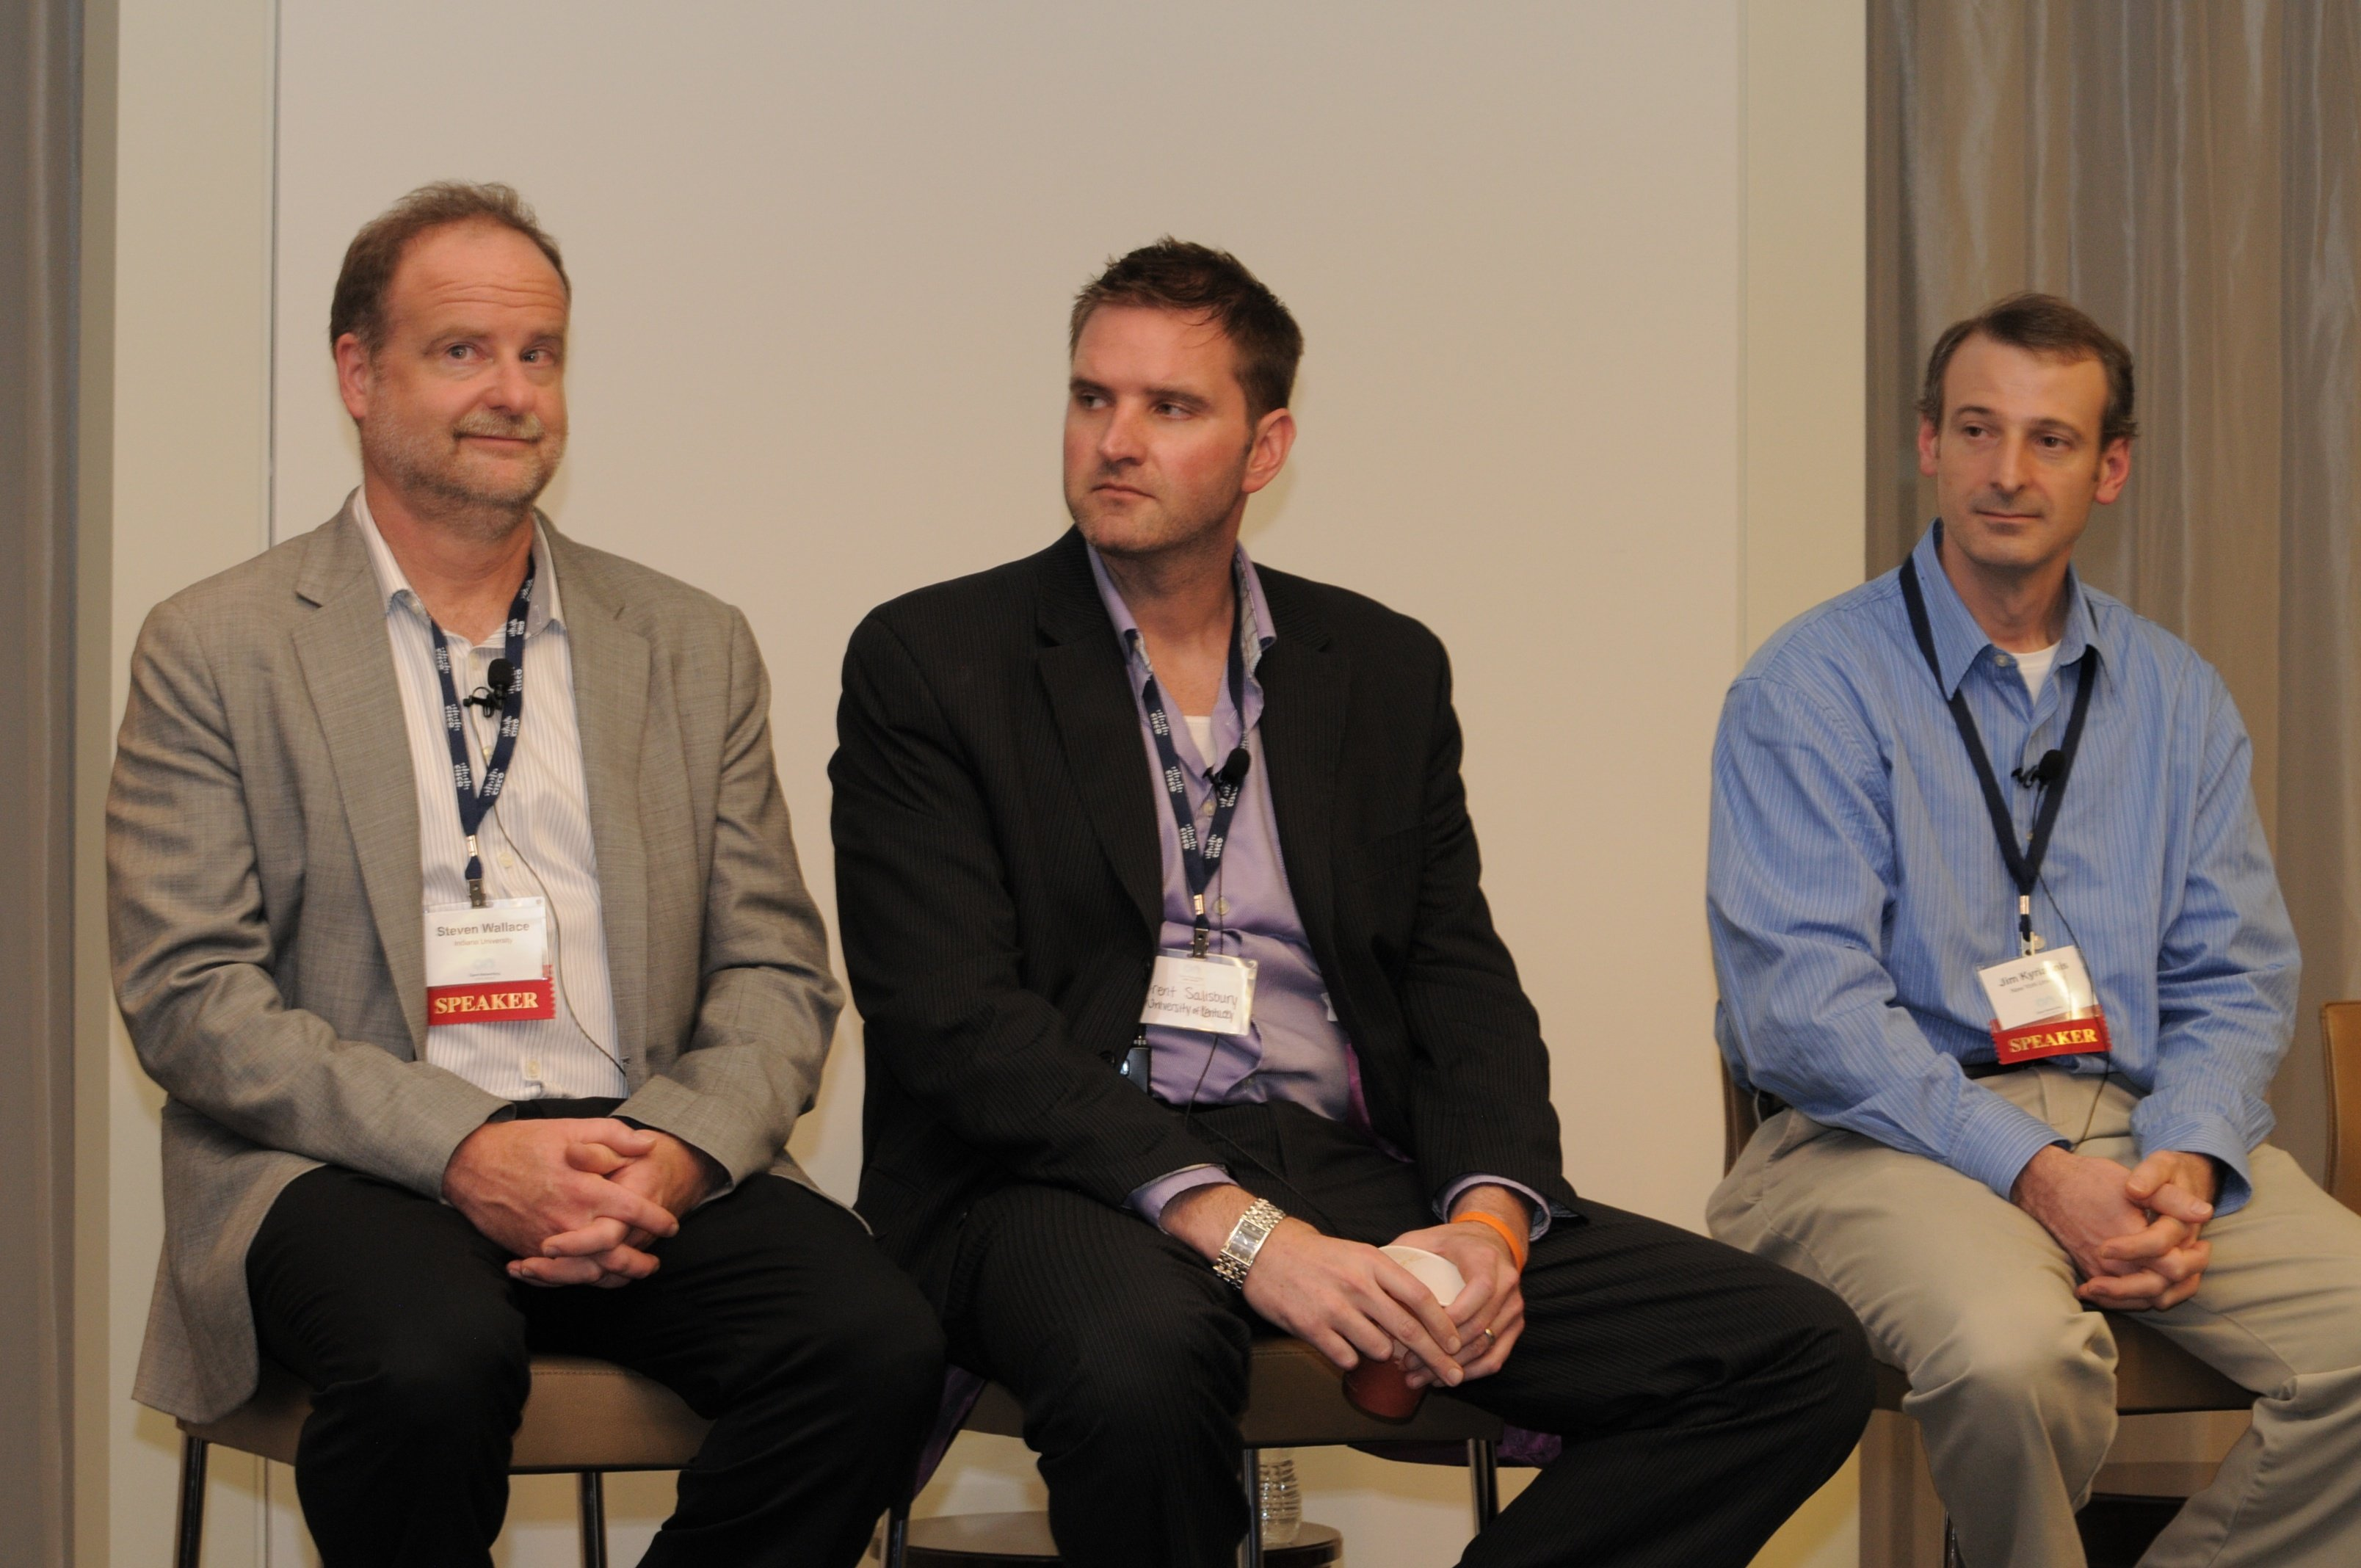 SDN in University Environments panelists Steve Wallace of Indiana University, Brent Salisbury of the University of Kentucky, and Jim Kyriannis of NYU